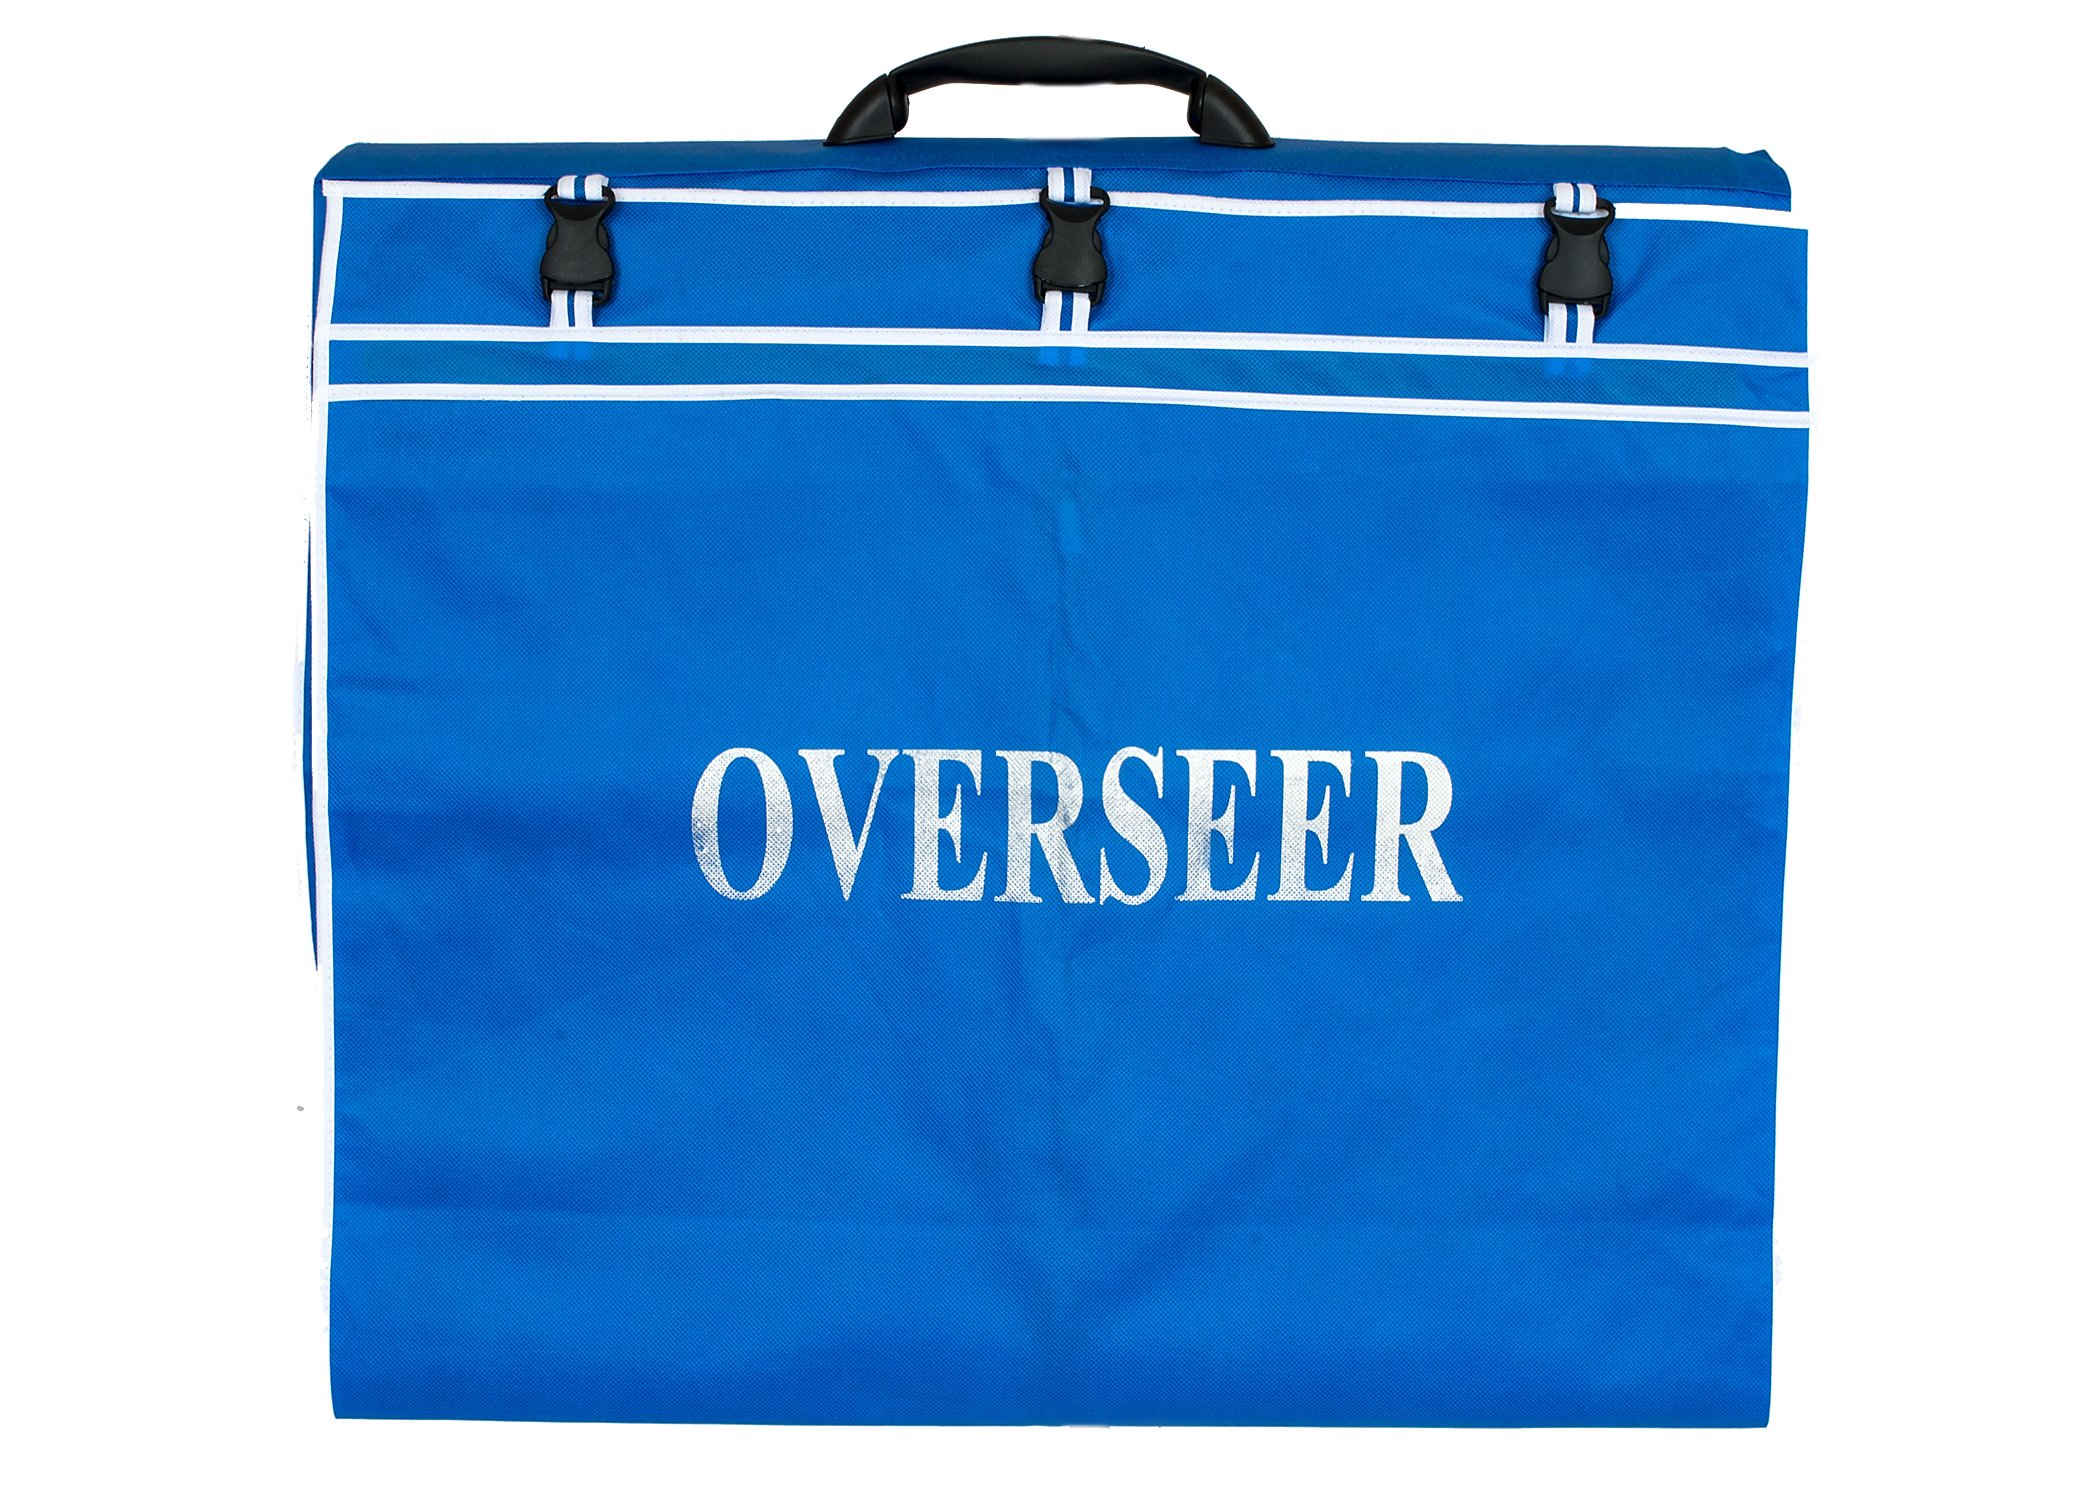 PREMIUM CLERGY OVERSEER GARMENT BAG FOR ROBES AND JACKETS(ROYAL/WHITE)